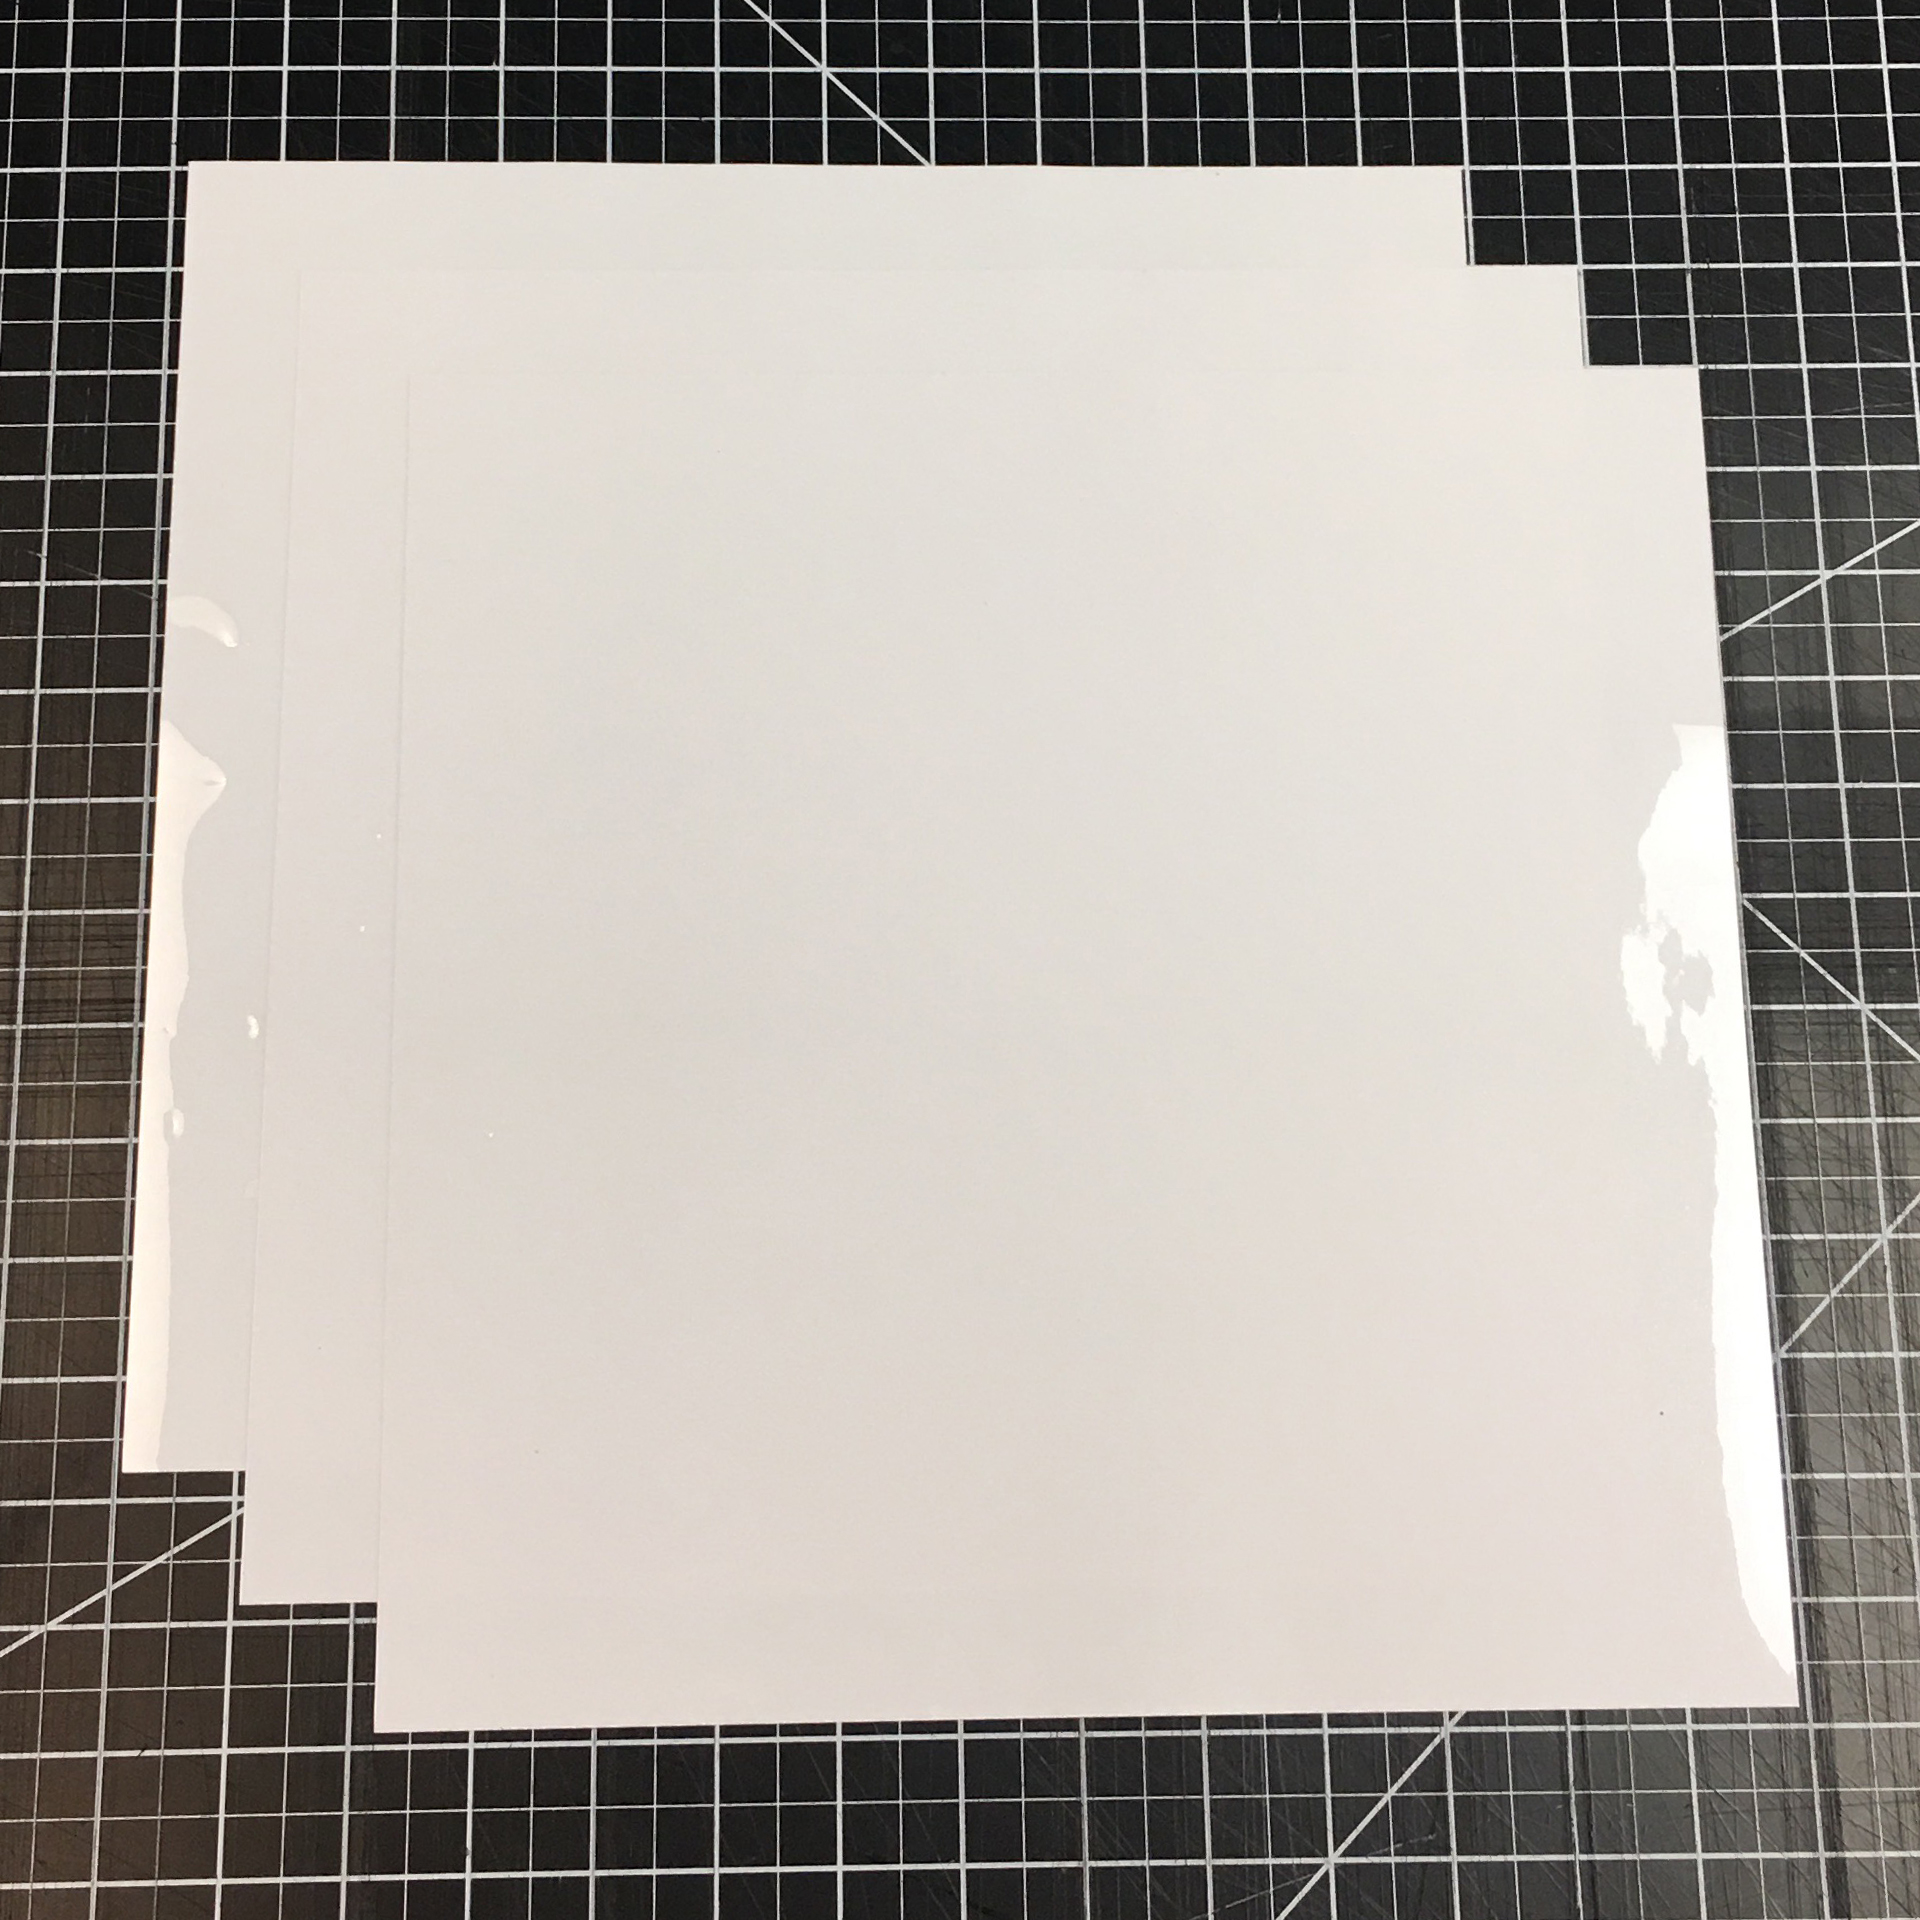 "White ThermoFlex Stretch 15"" x 12"" (3 Sheets) of Iron on Heat Transfer Vinyl, HTV"